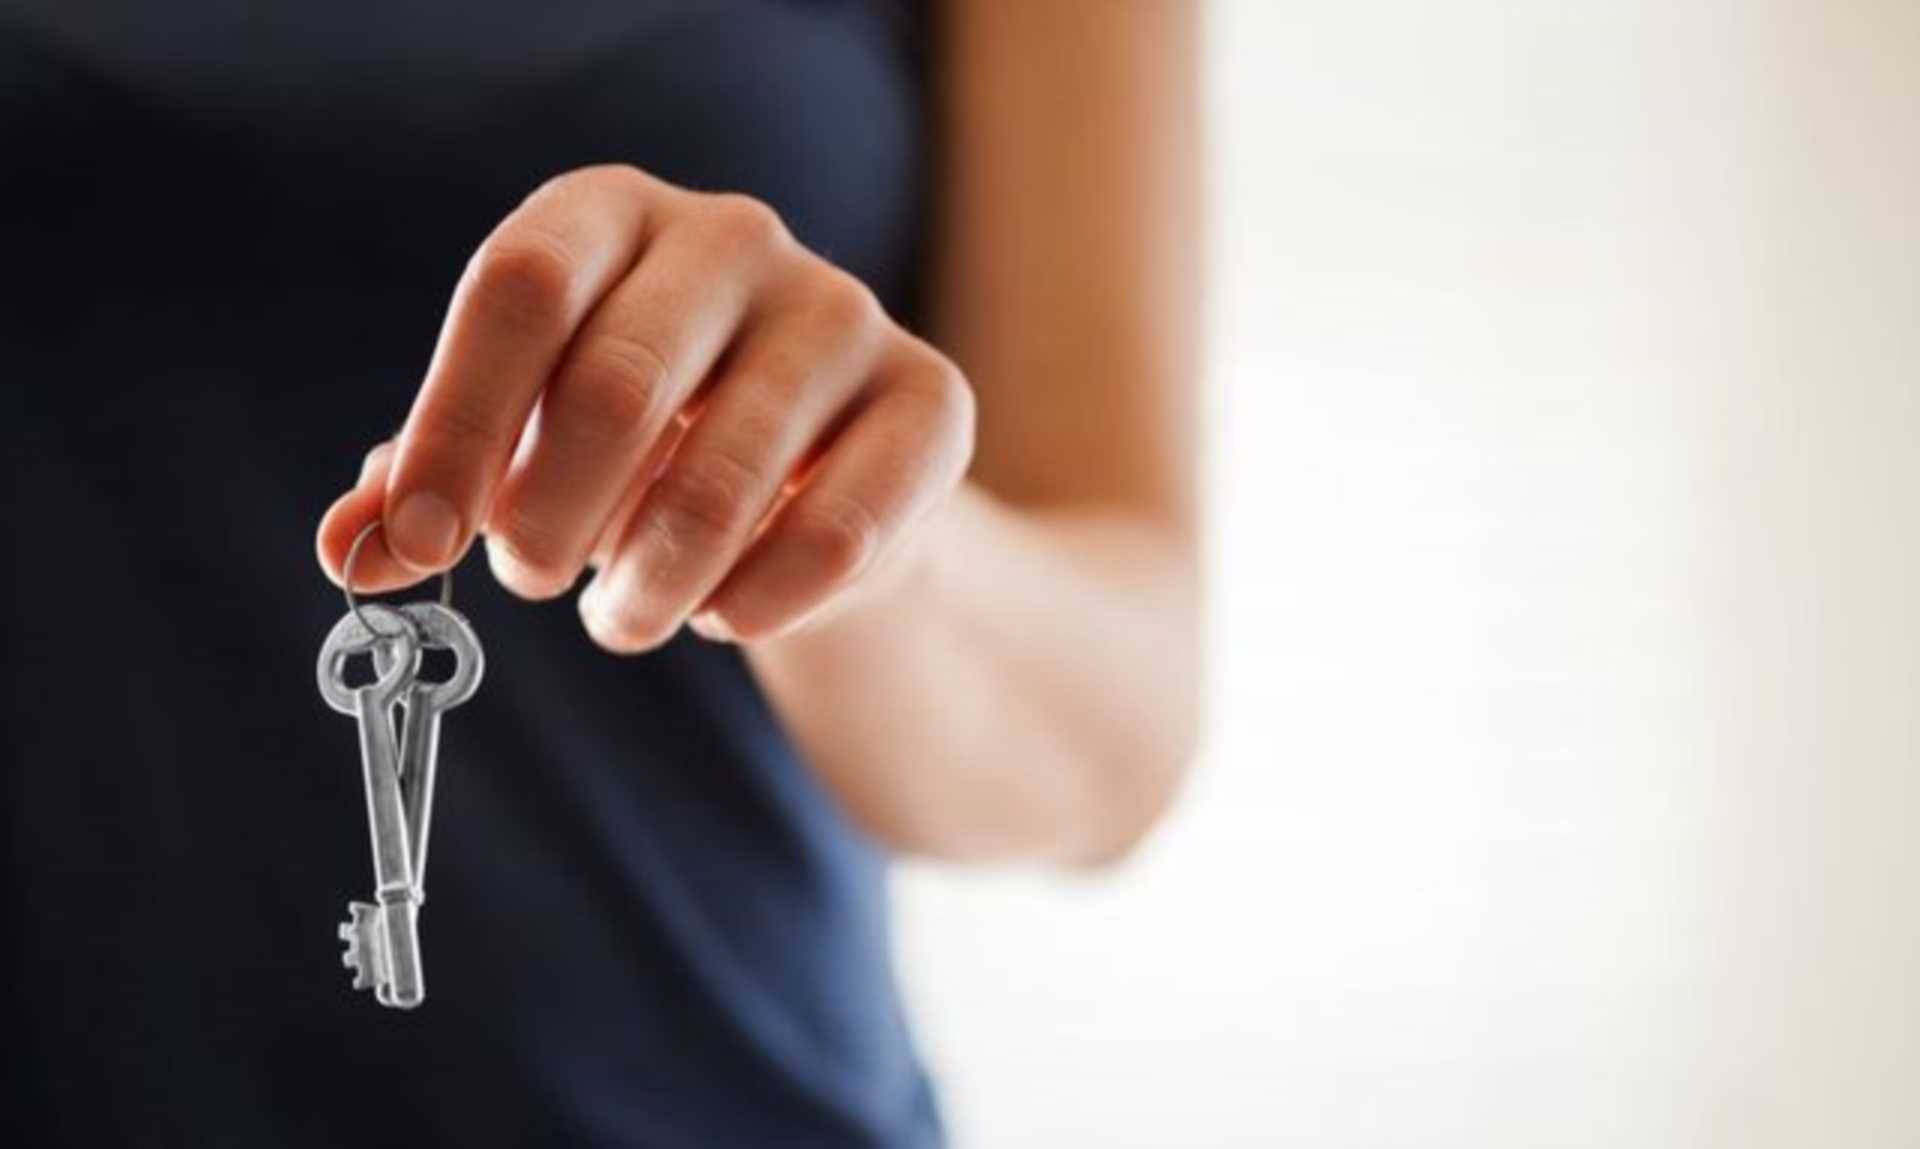 8 requirements tenants expect from a rental home